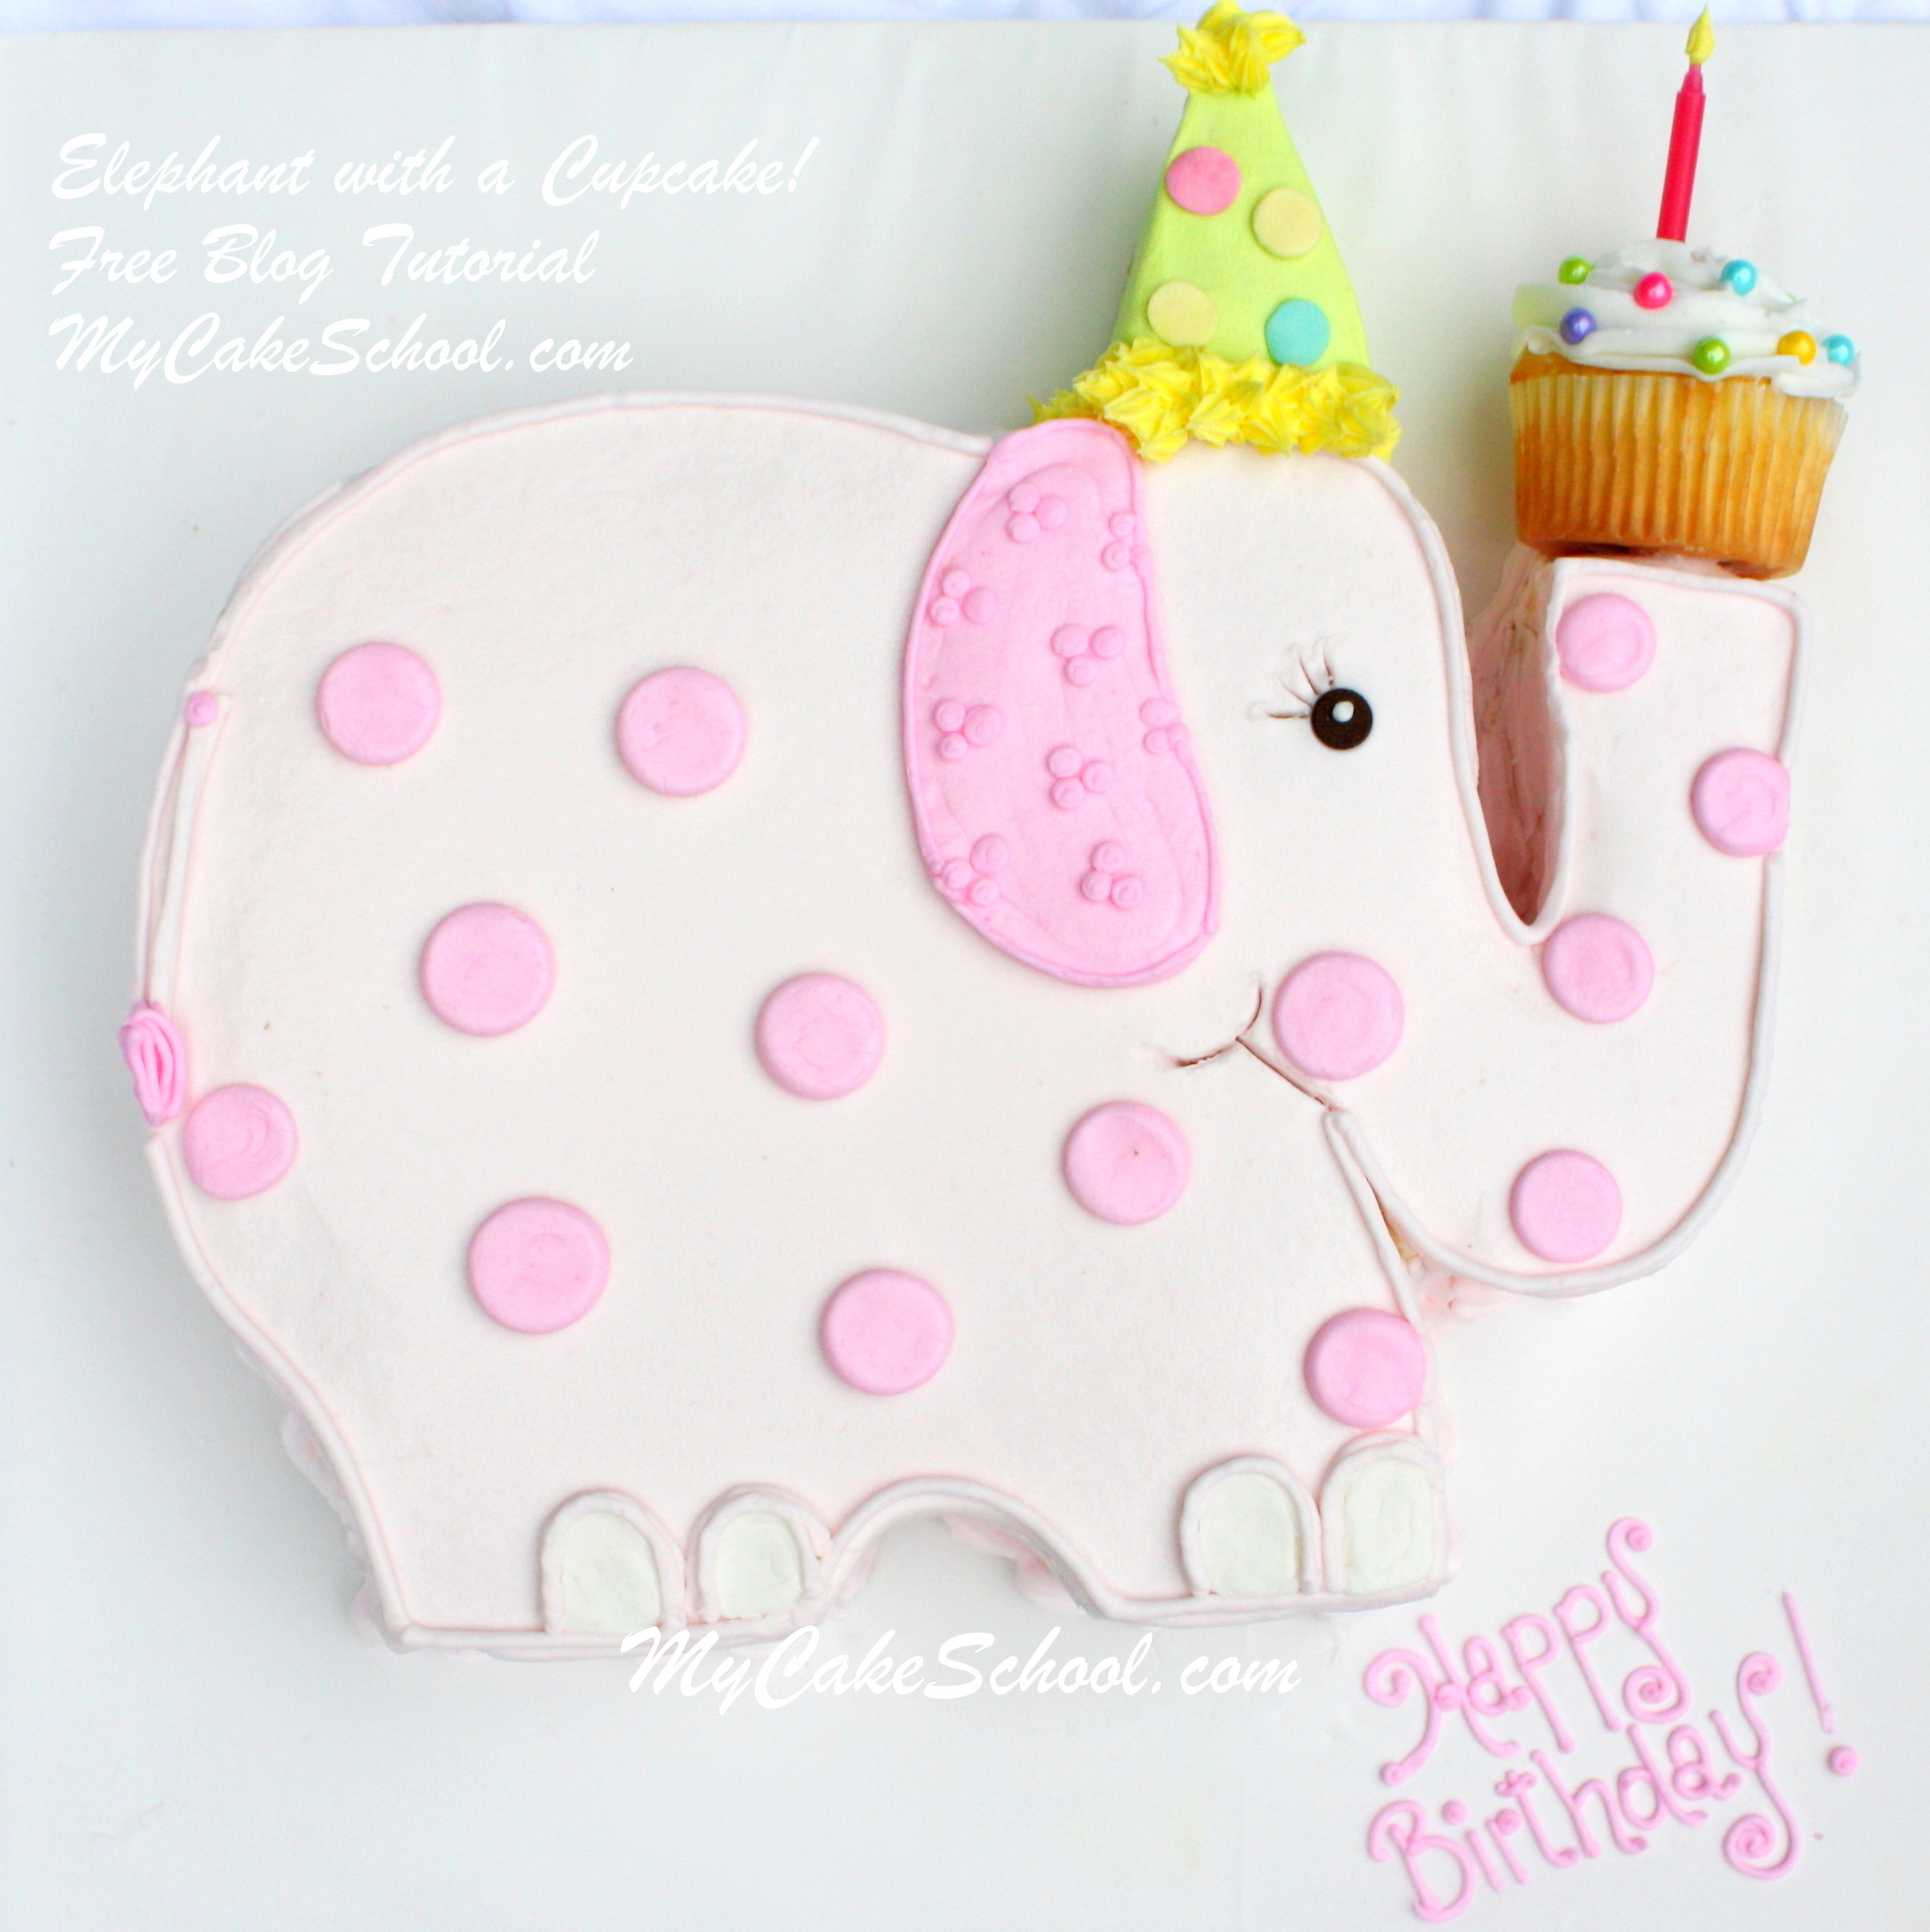 Elephant Birthday Cakes Elephant With A Cupcake A Blog Tutorial My Cake School